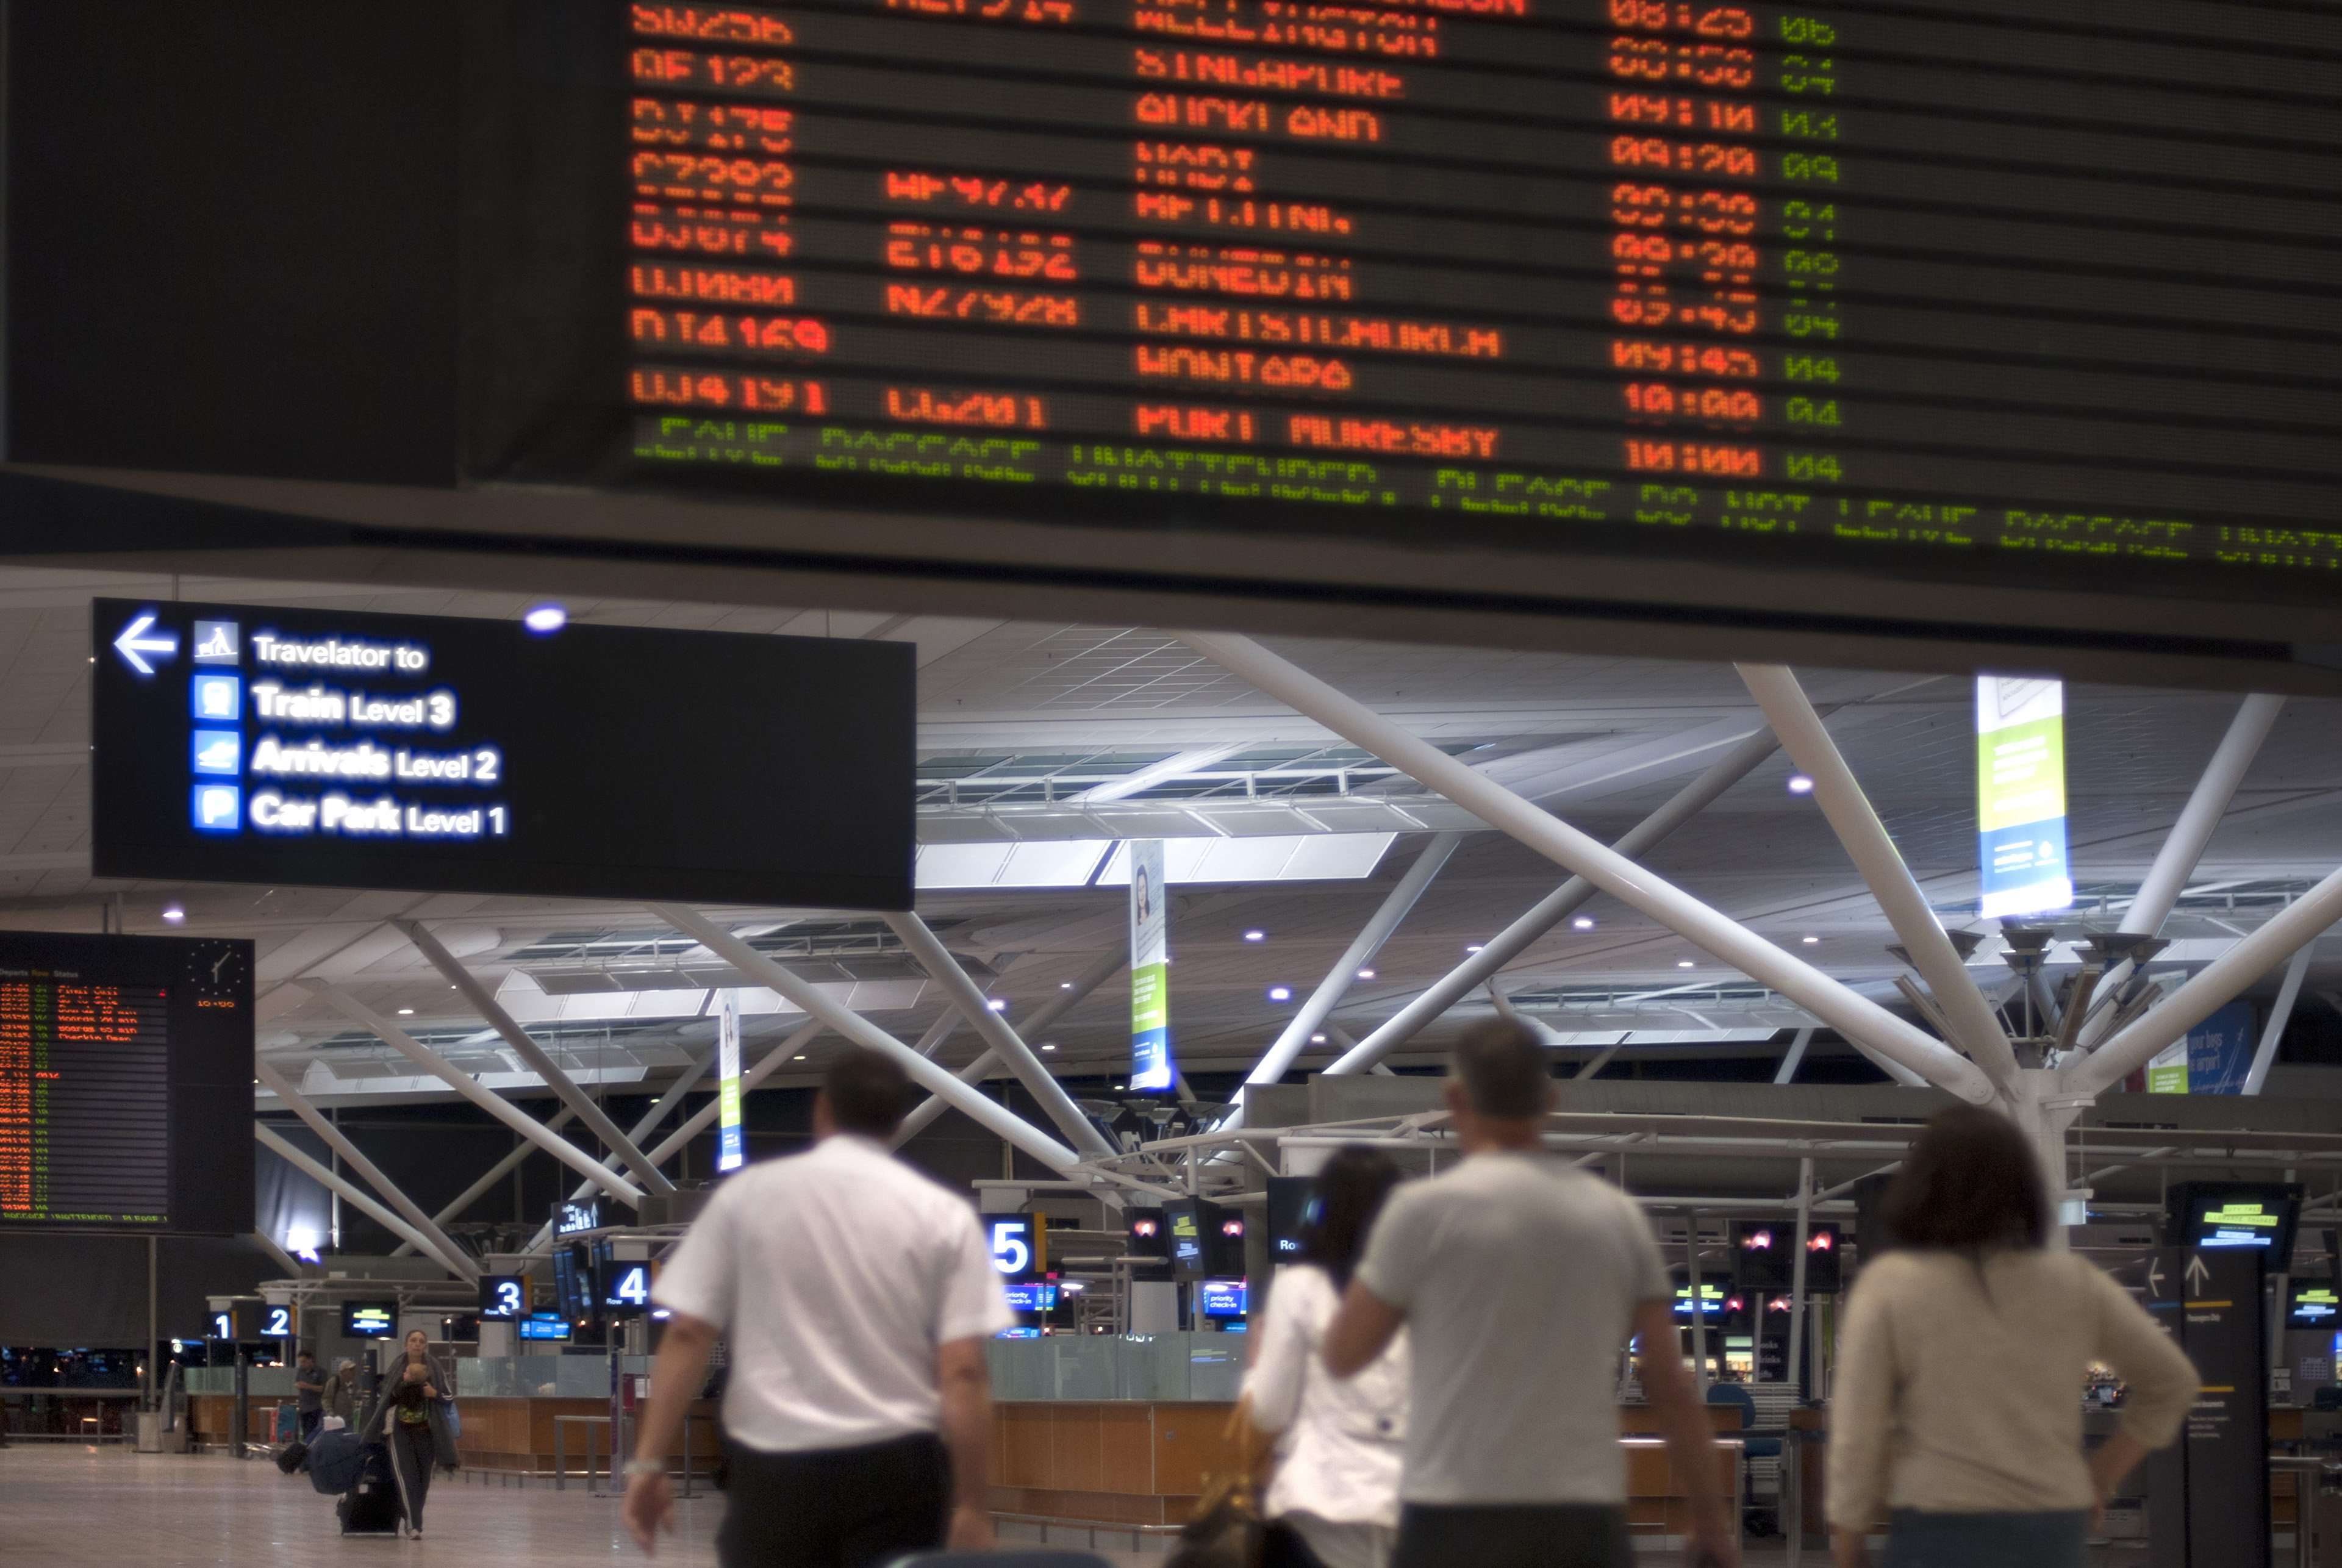 Passengers in an airport terminal building below the departures or arrivals board detailing the flights